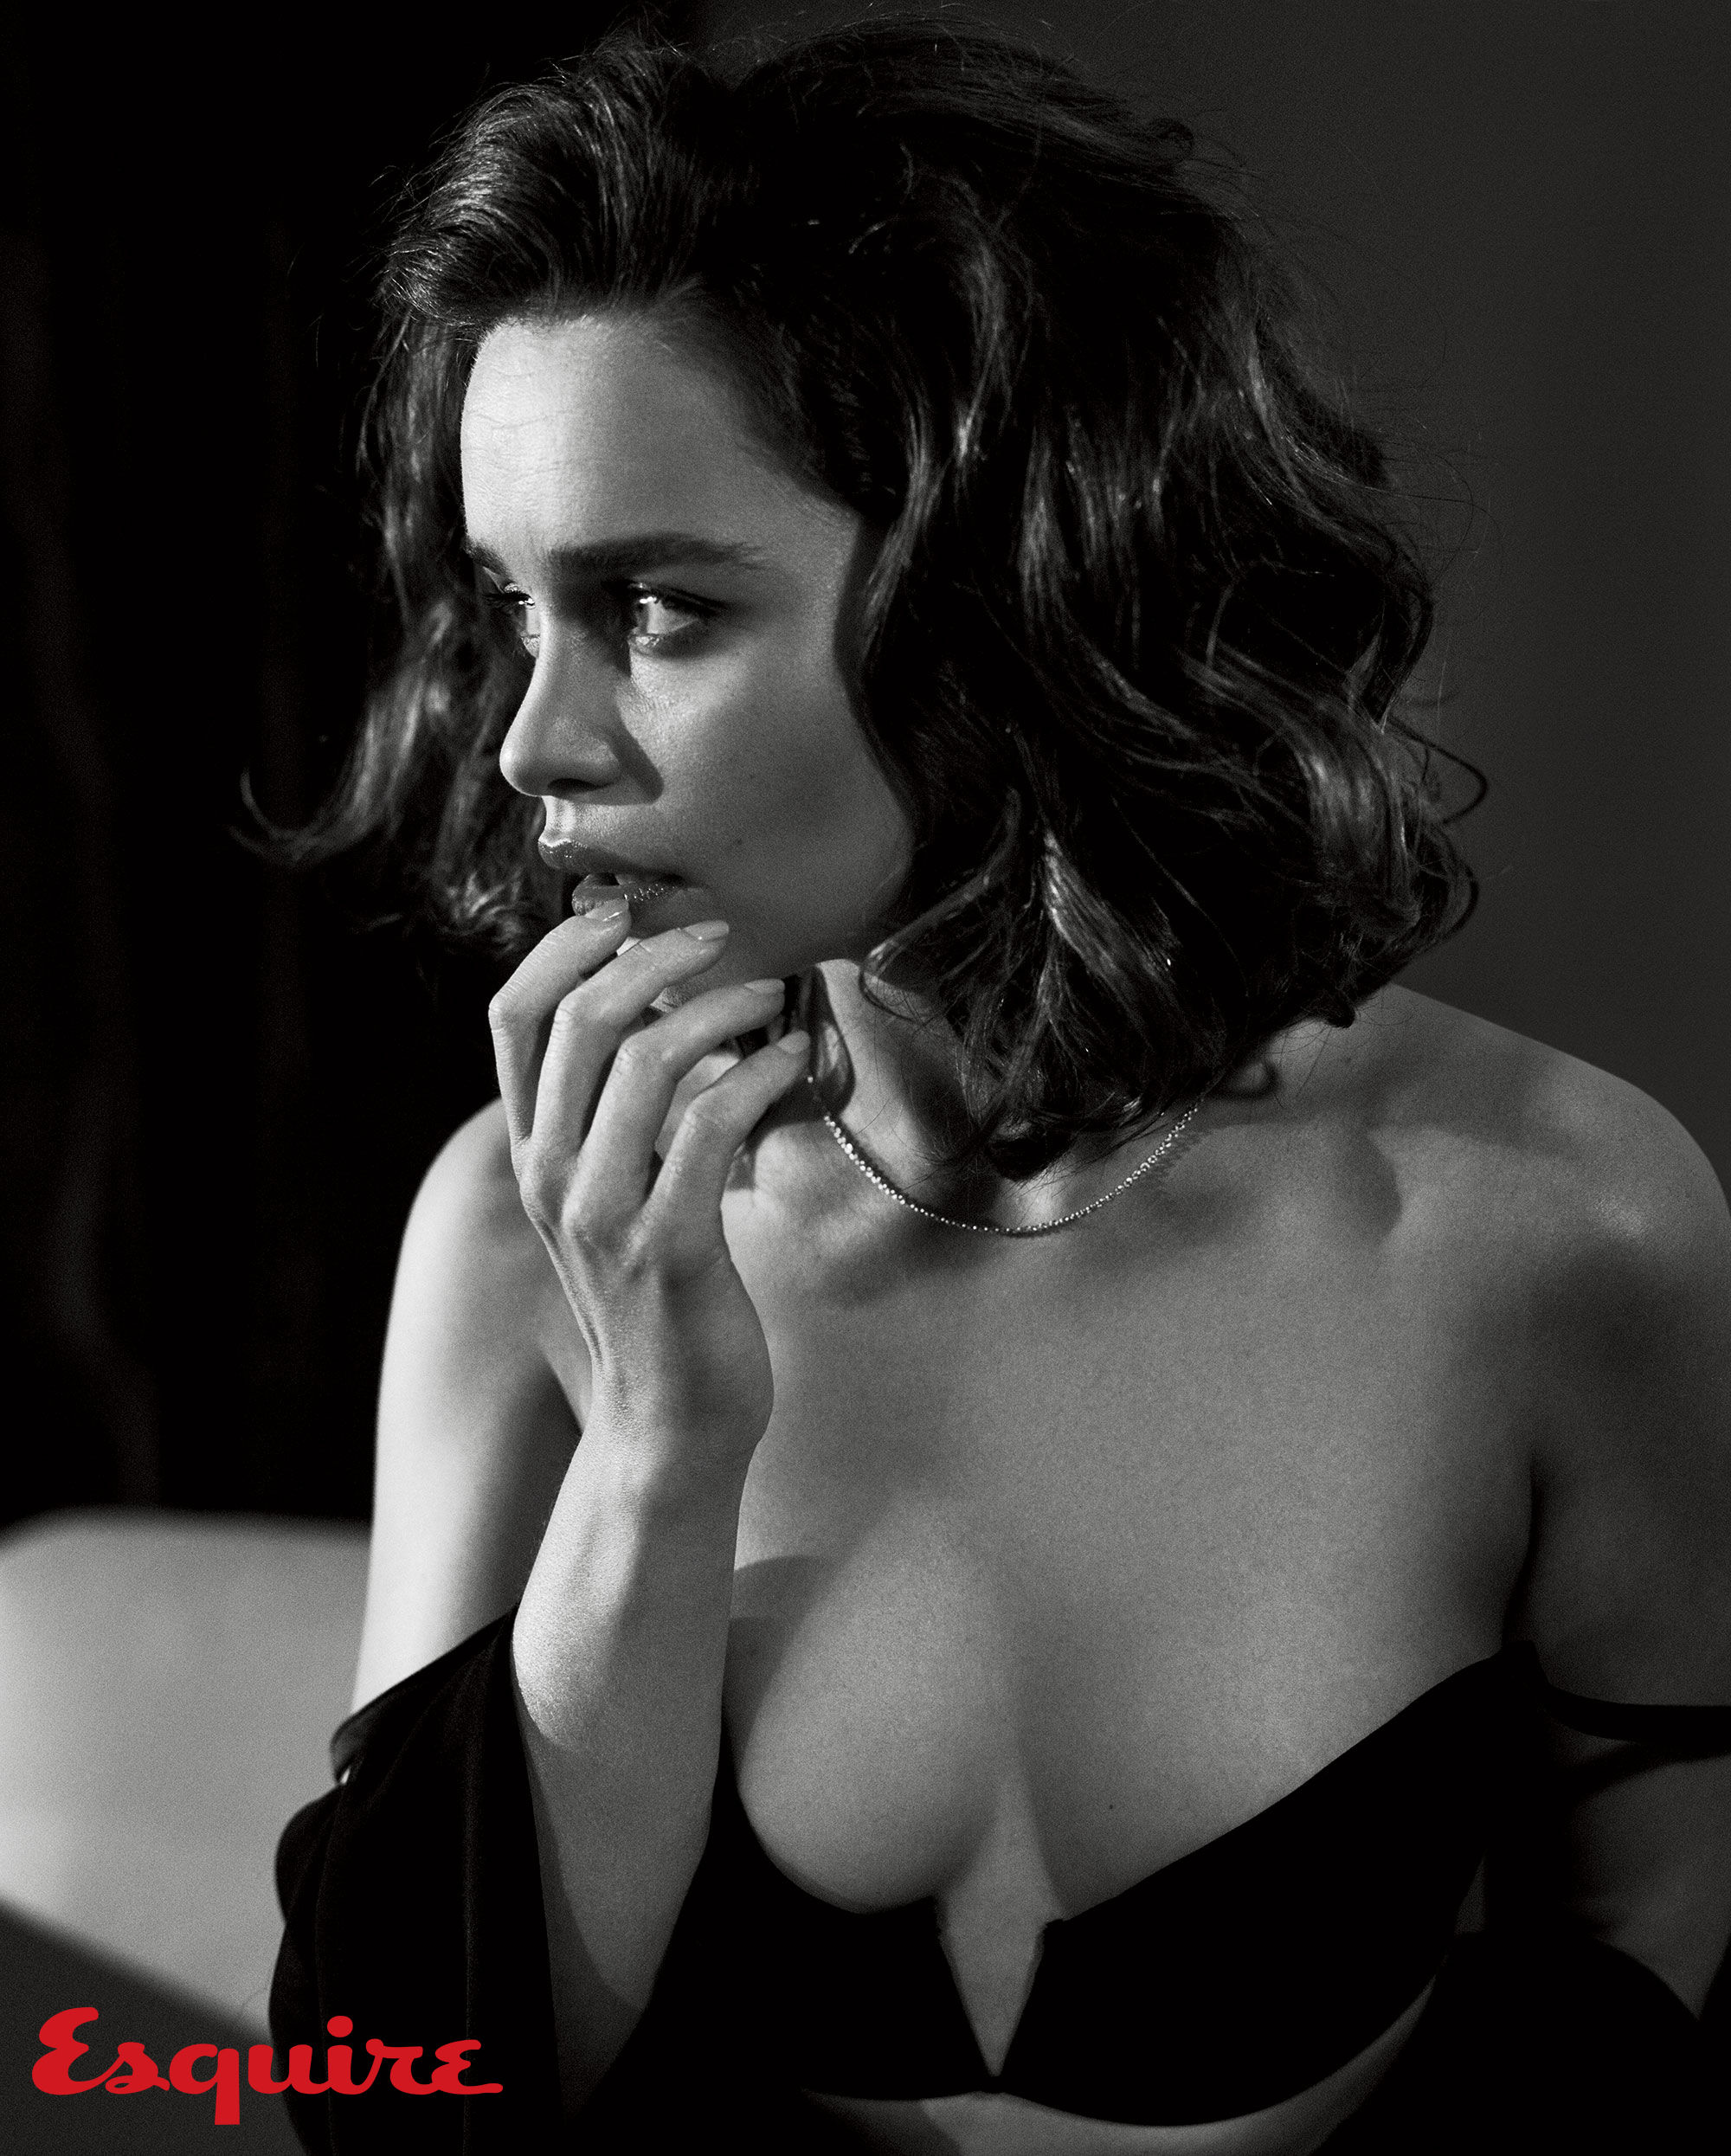 HIGH RES Esquire emilia-clarke-sexiest-woman-alive-2015 6